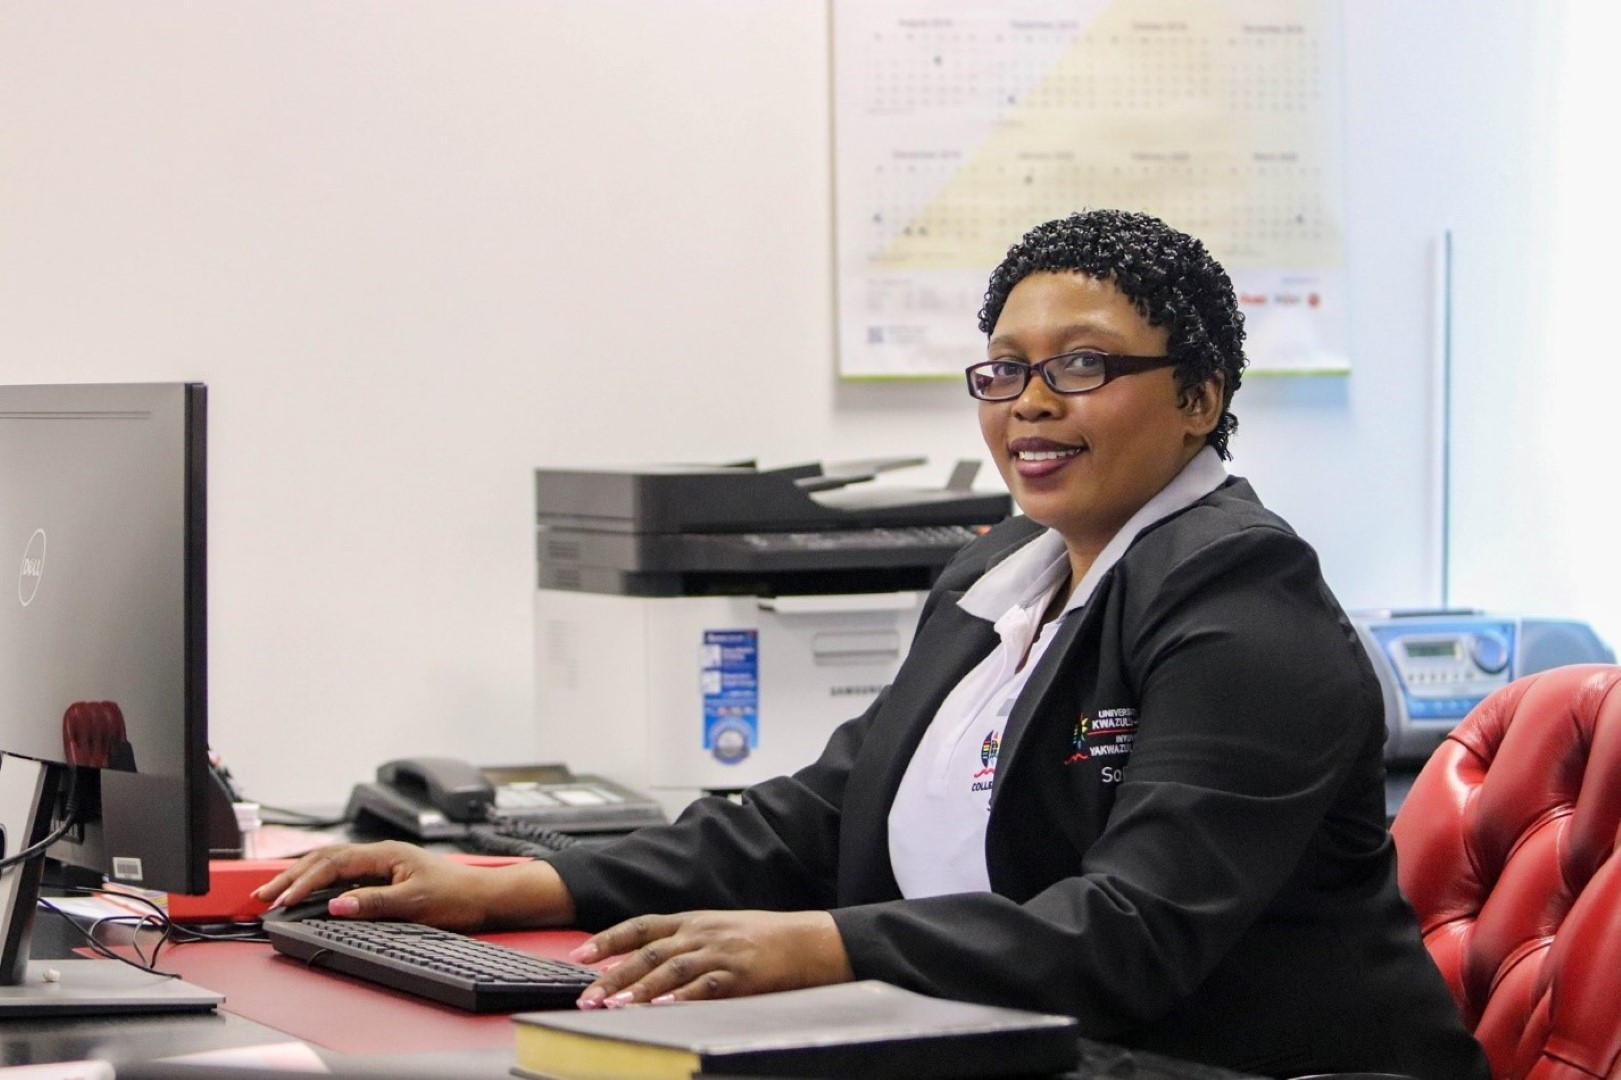 UKZN Manager Presents Research on Inclusive Leadership at Conference